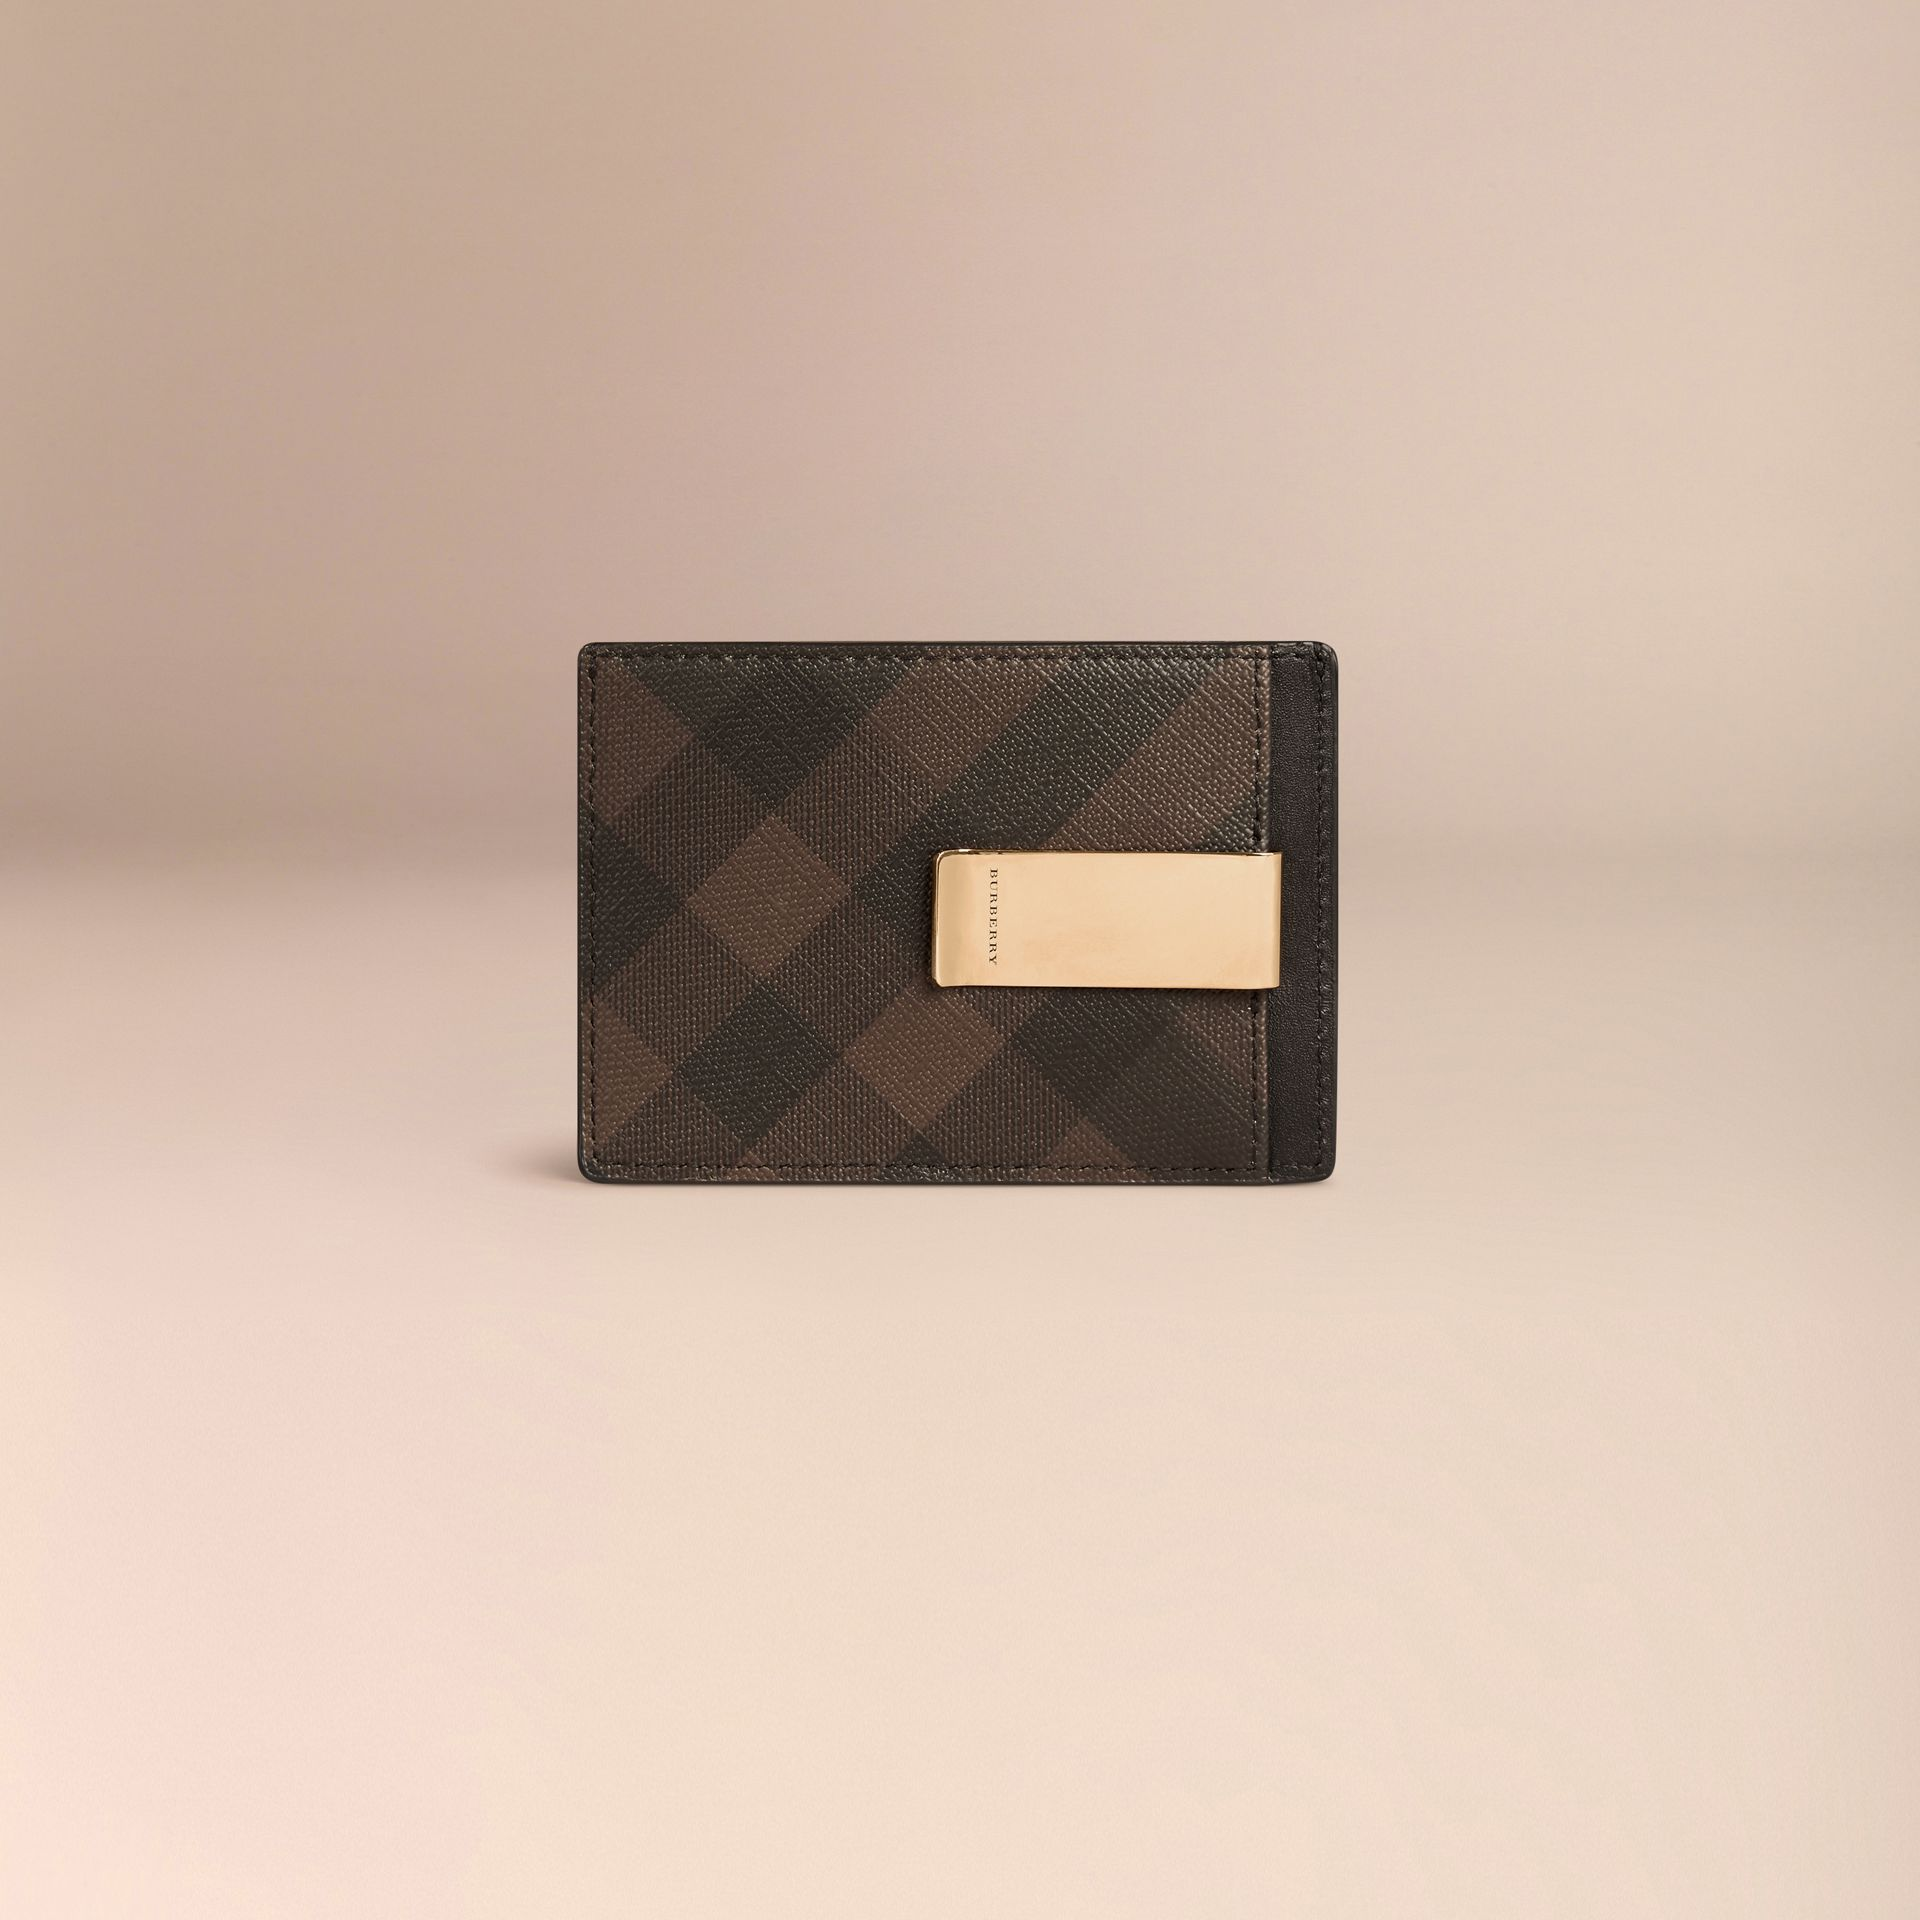 London Check Money Clip Card Case in Chocolate/black - gallery image 2